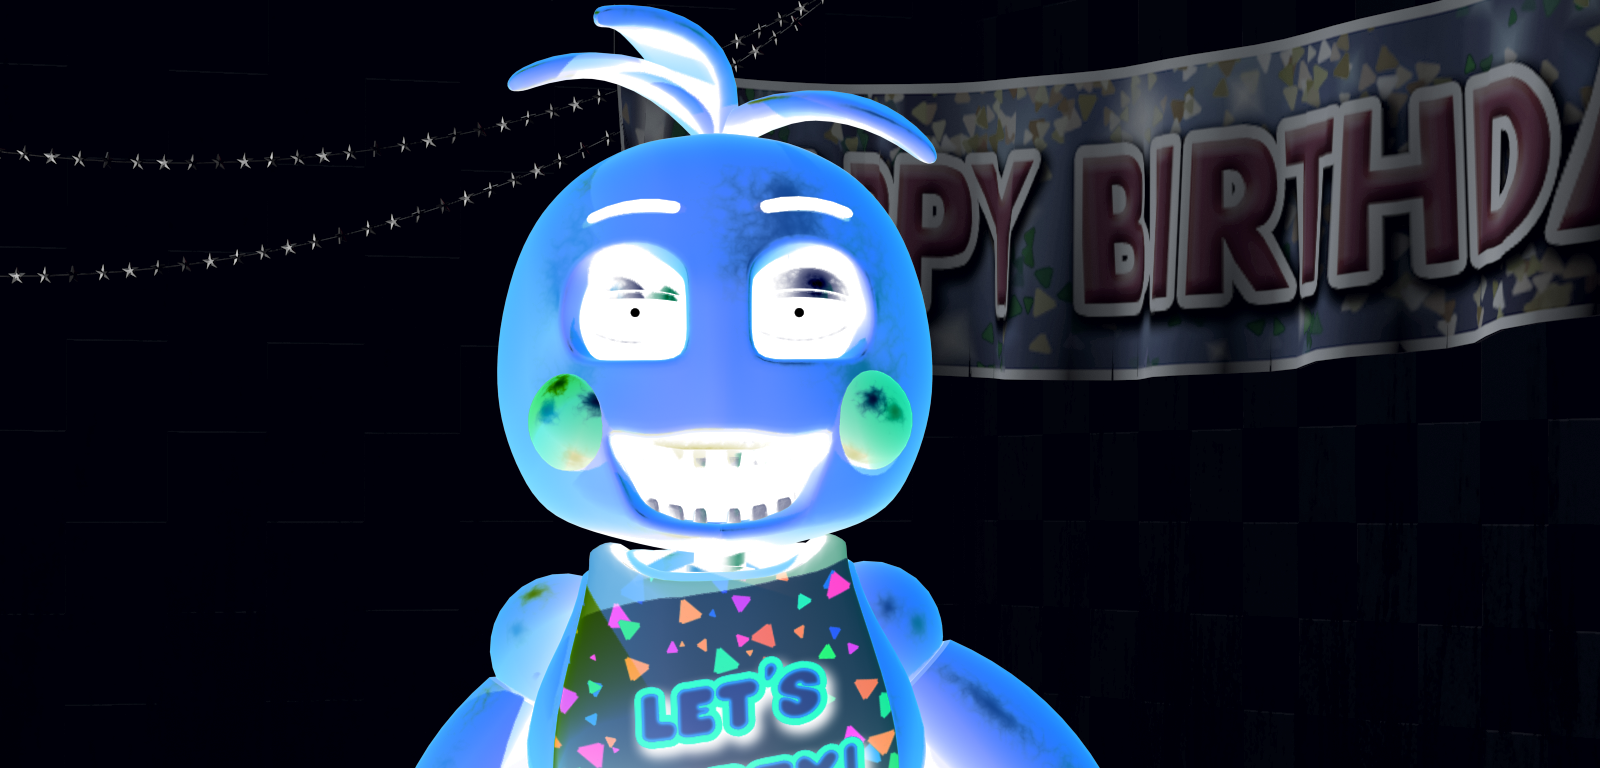 fnaf illusions optical flashes chica illusion jumpscares funtime tricks eye madly anywhere toy wall foxy